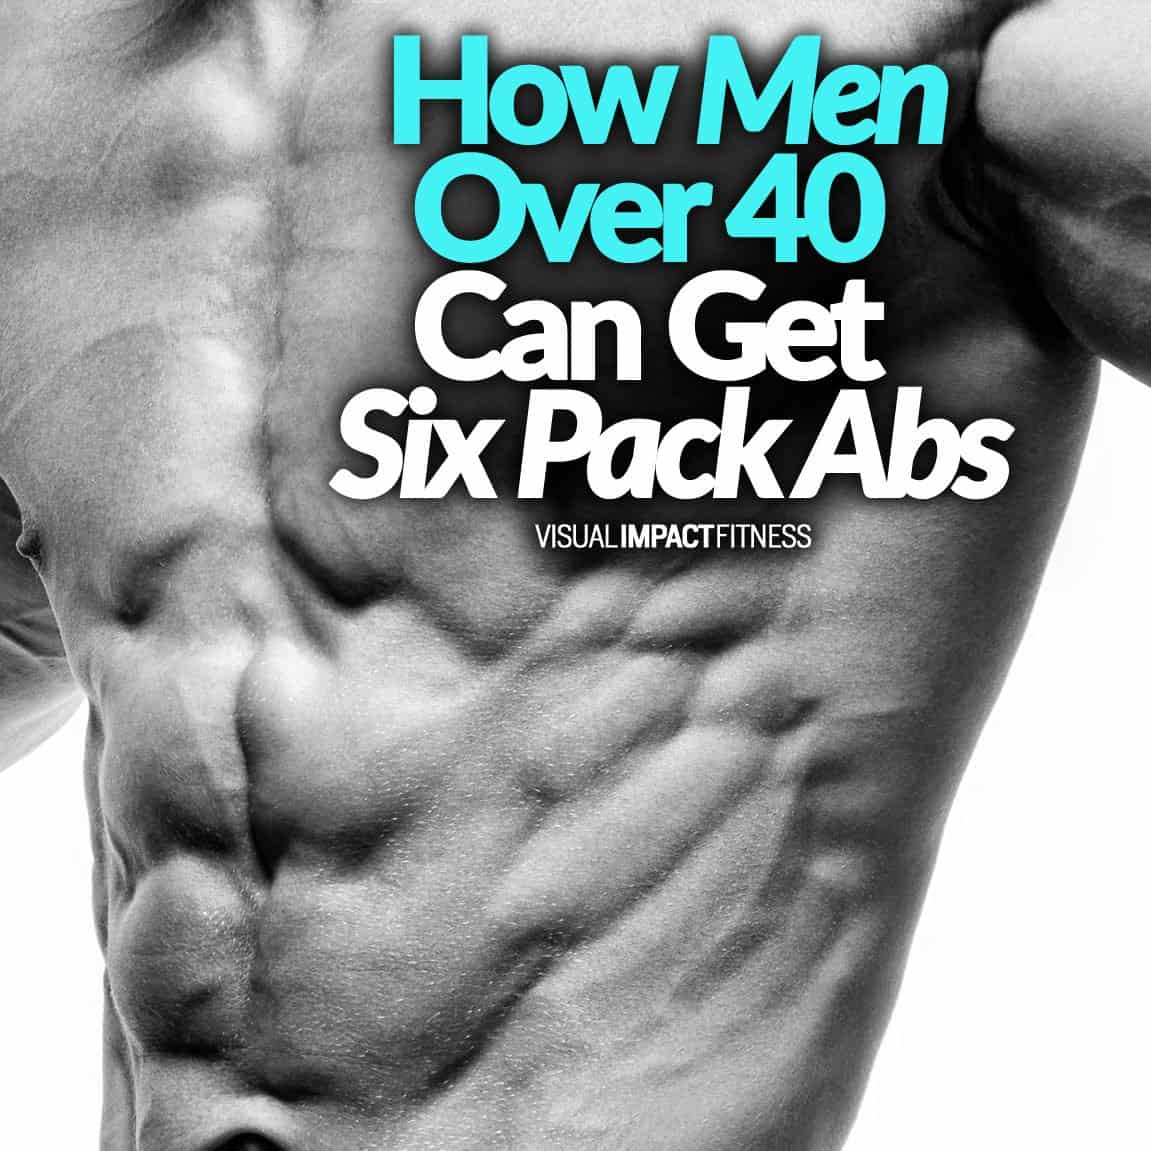 How Men Over 40 Can Get Six Pack Abs